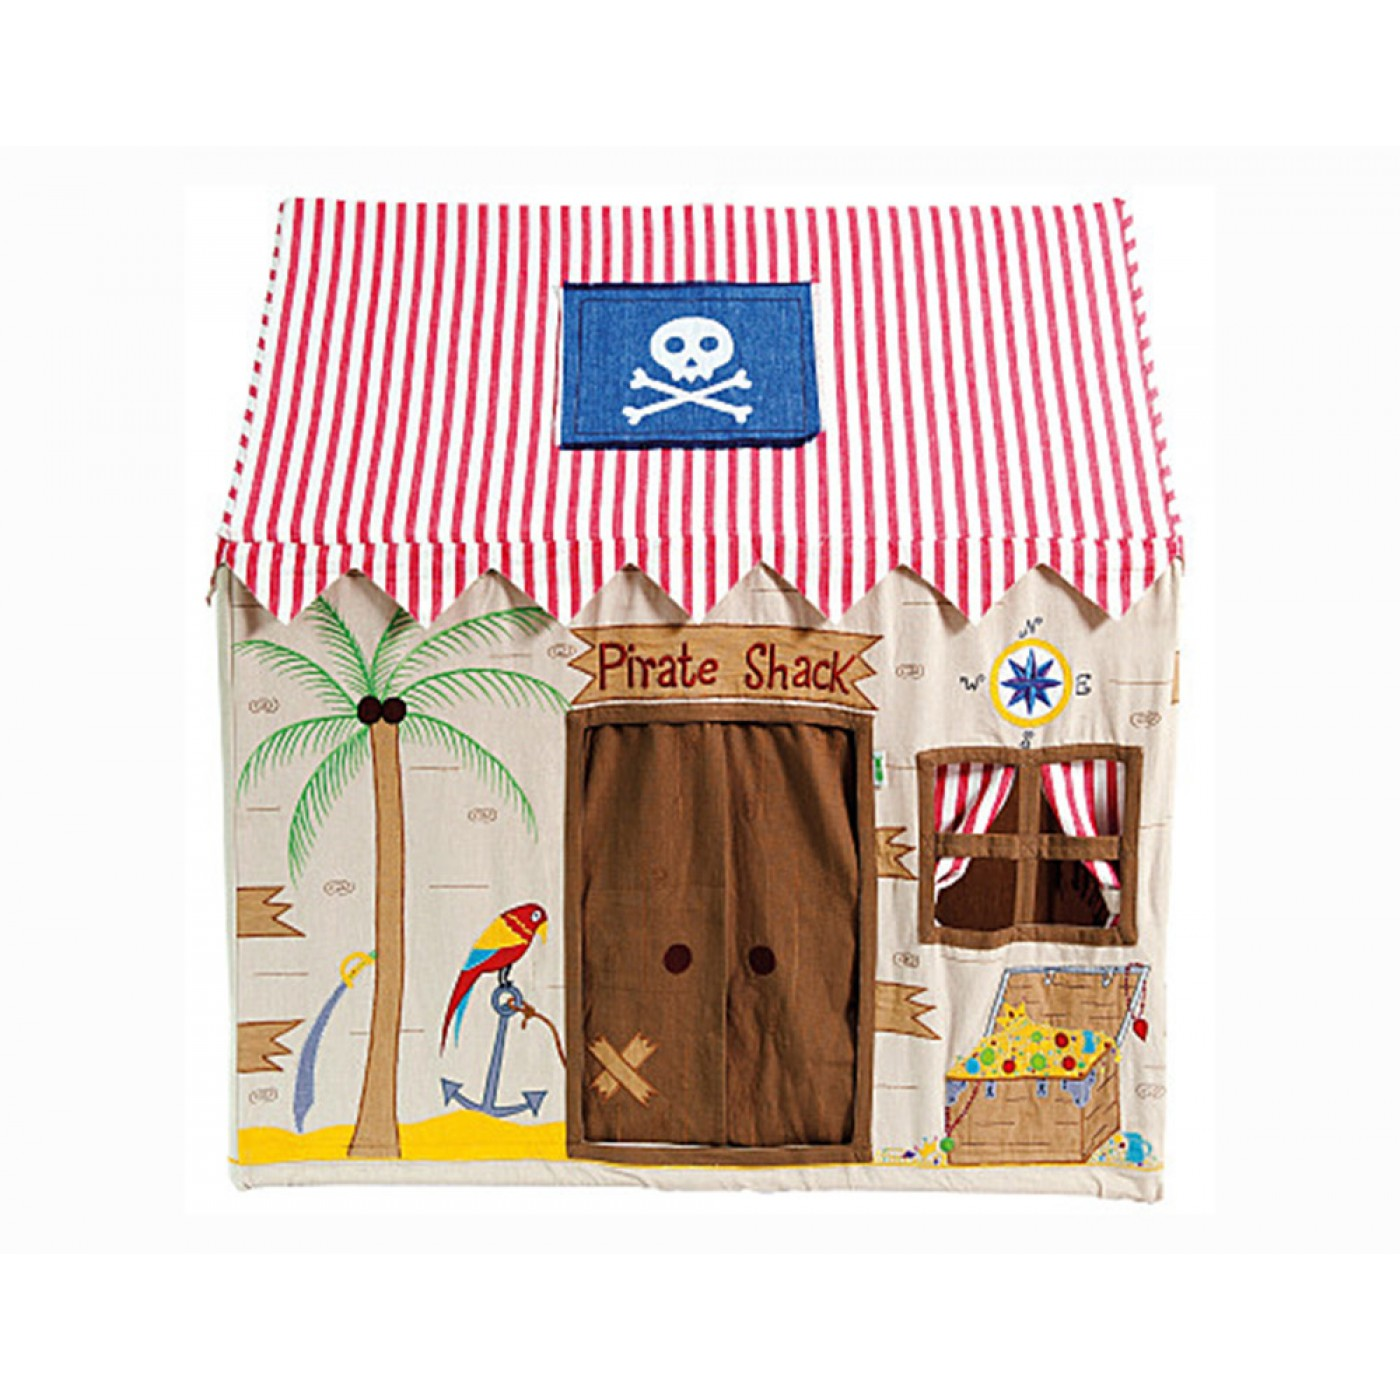 Win Green - Large Pirate Shack Playhouse